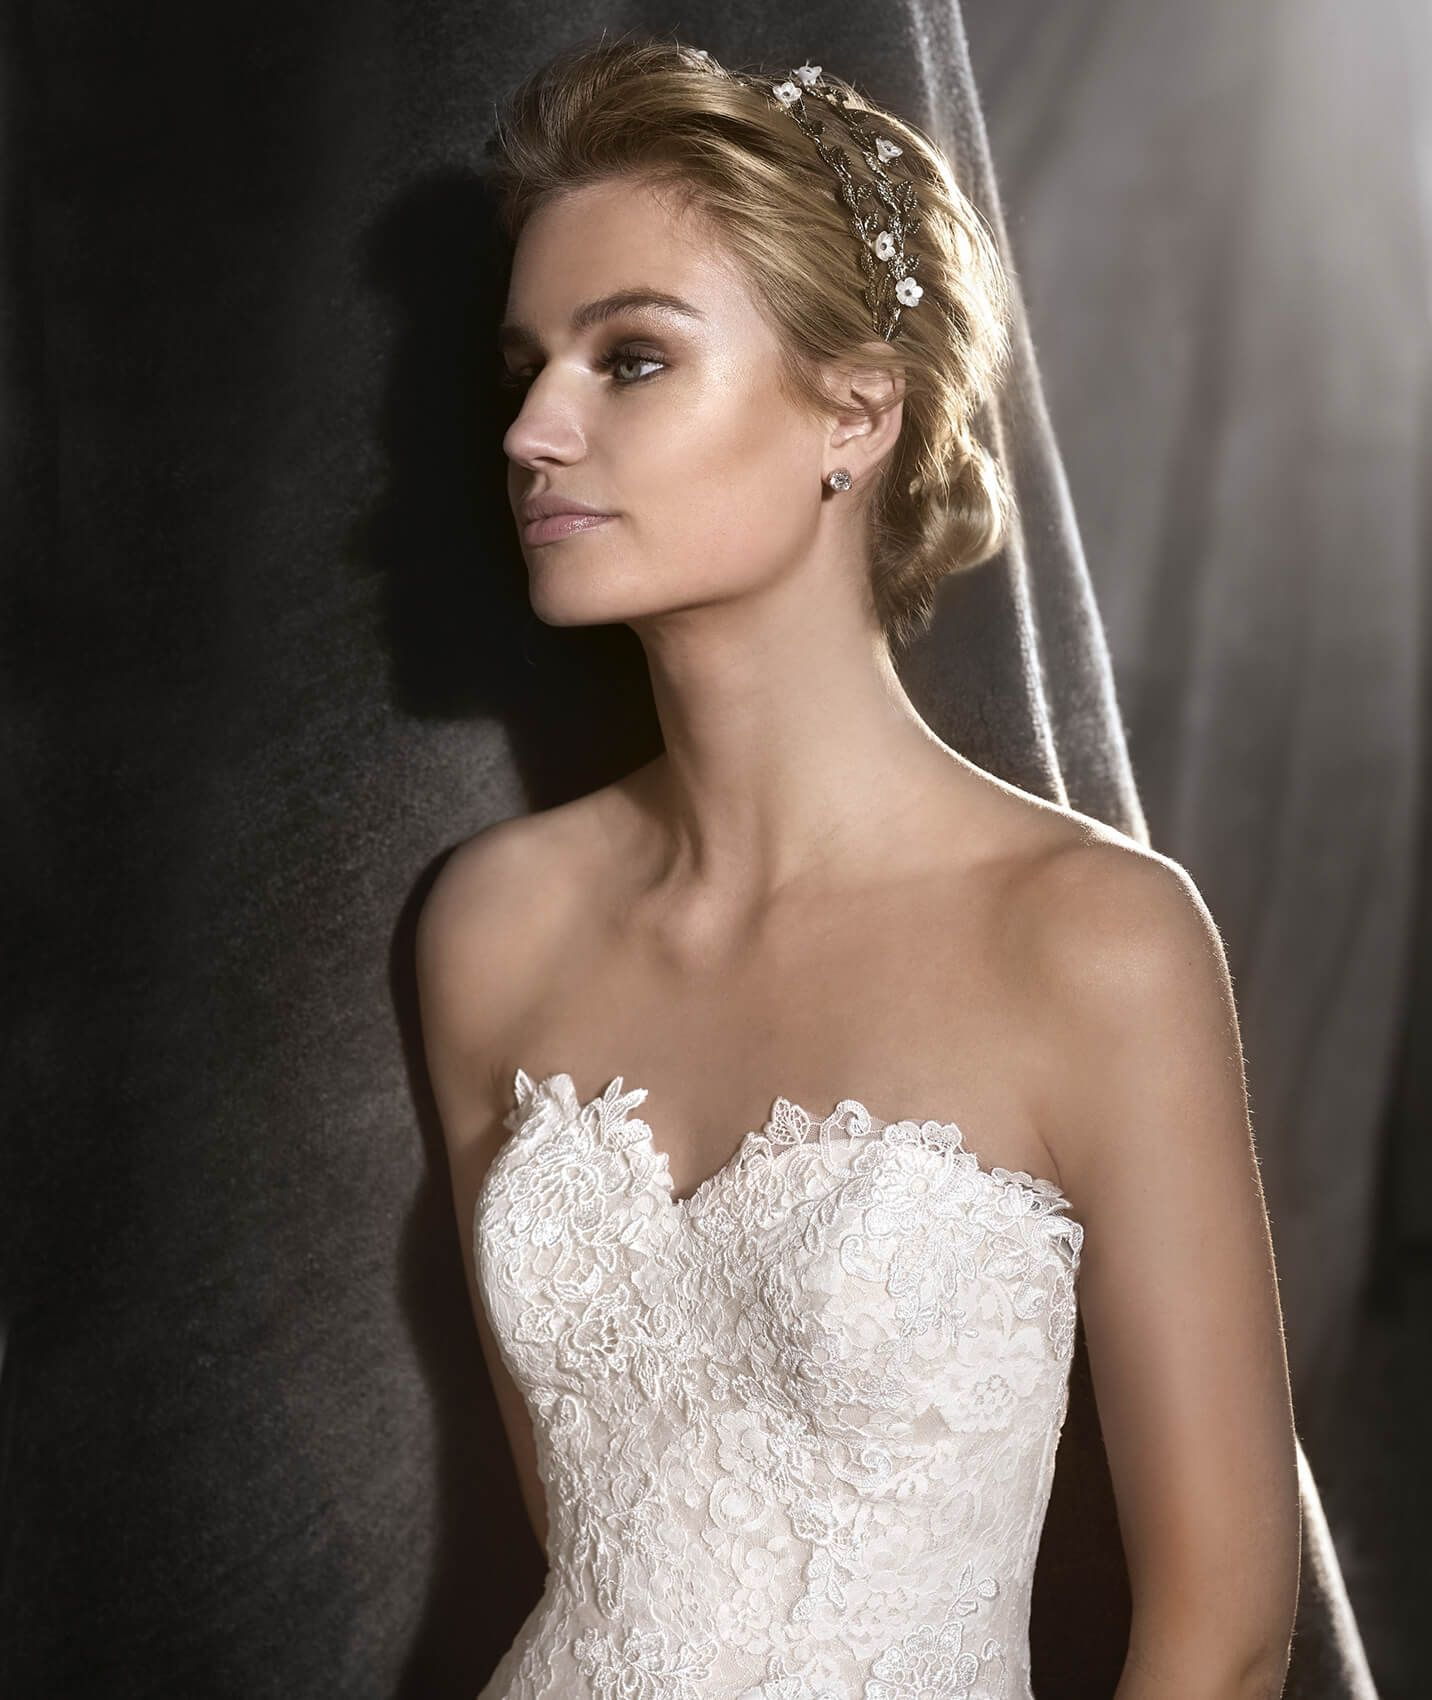 Oringo Is A Mermaid Wedding Dress In Combination Of Different Fabrics To Create Romantic Bridal Look